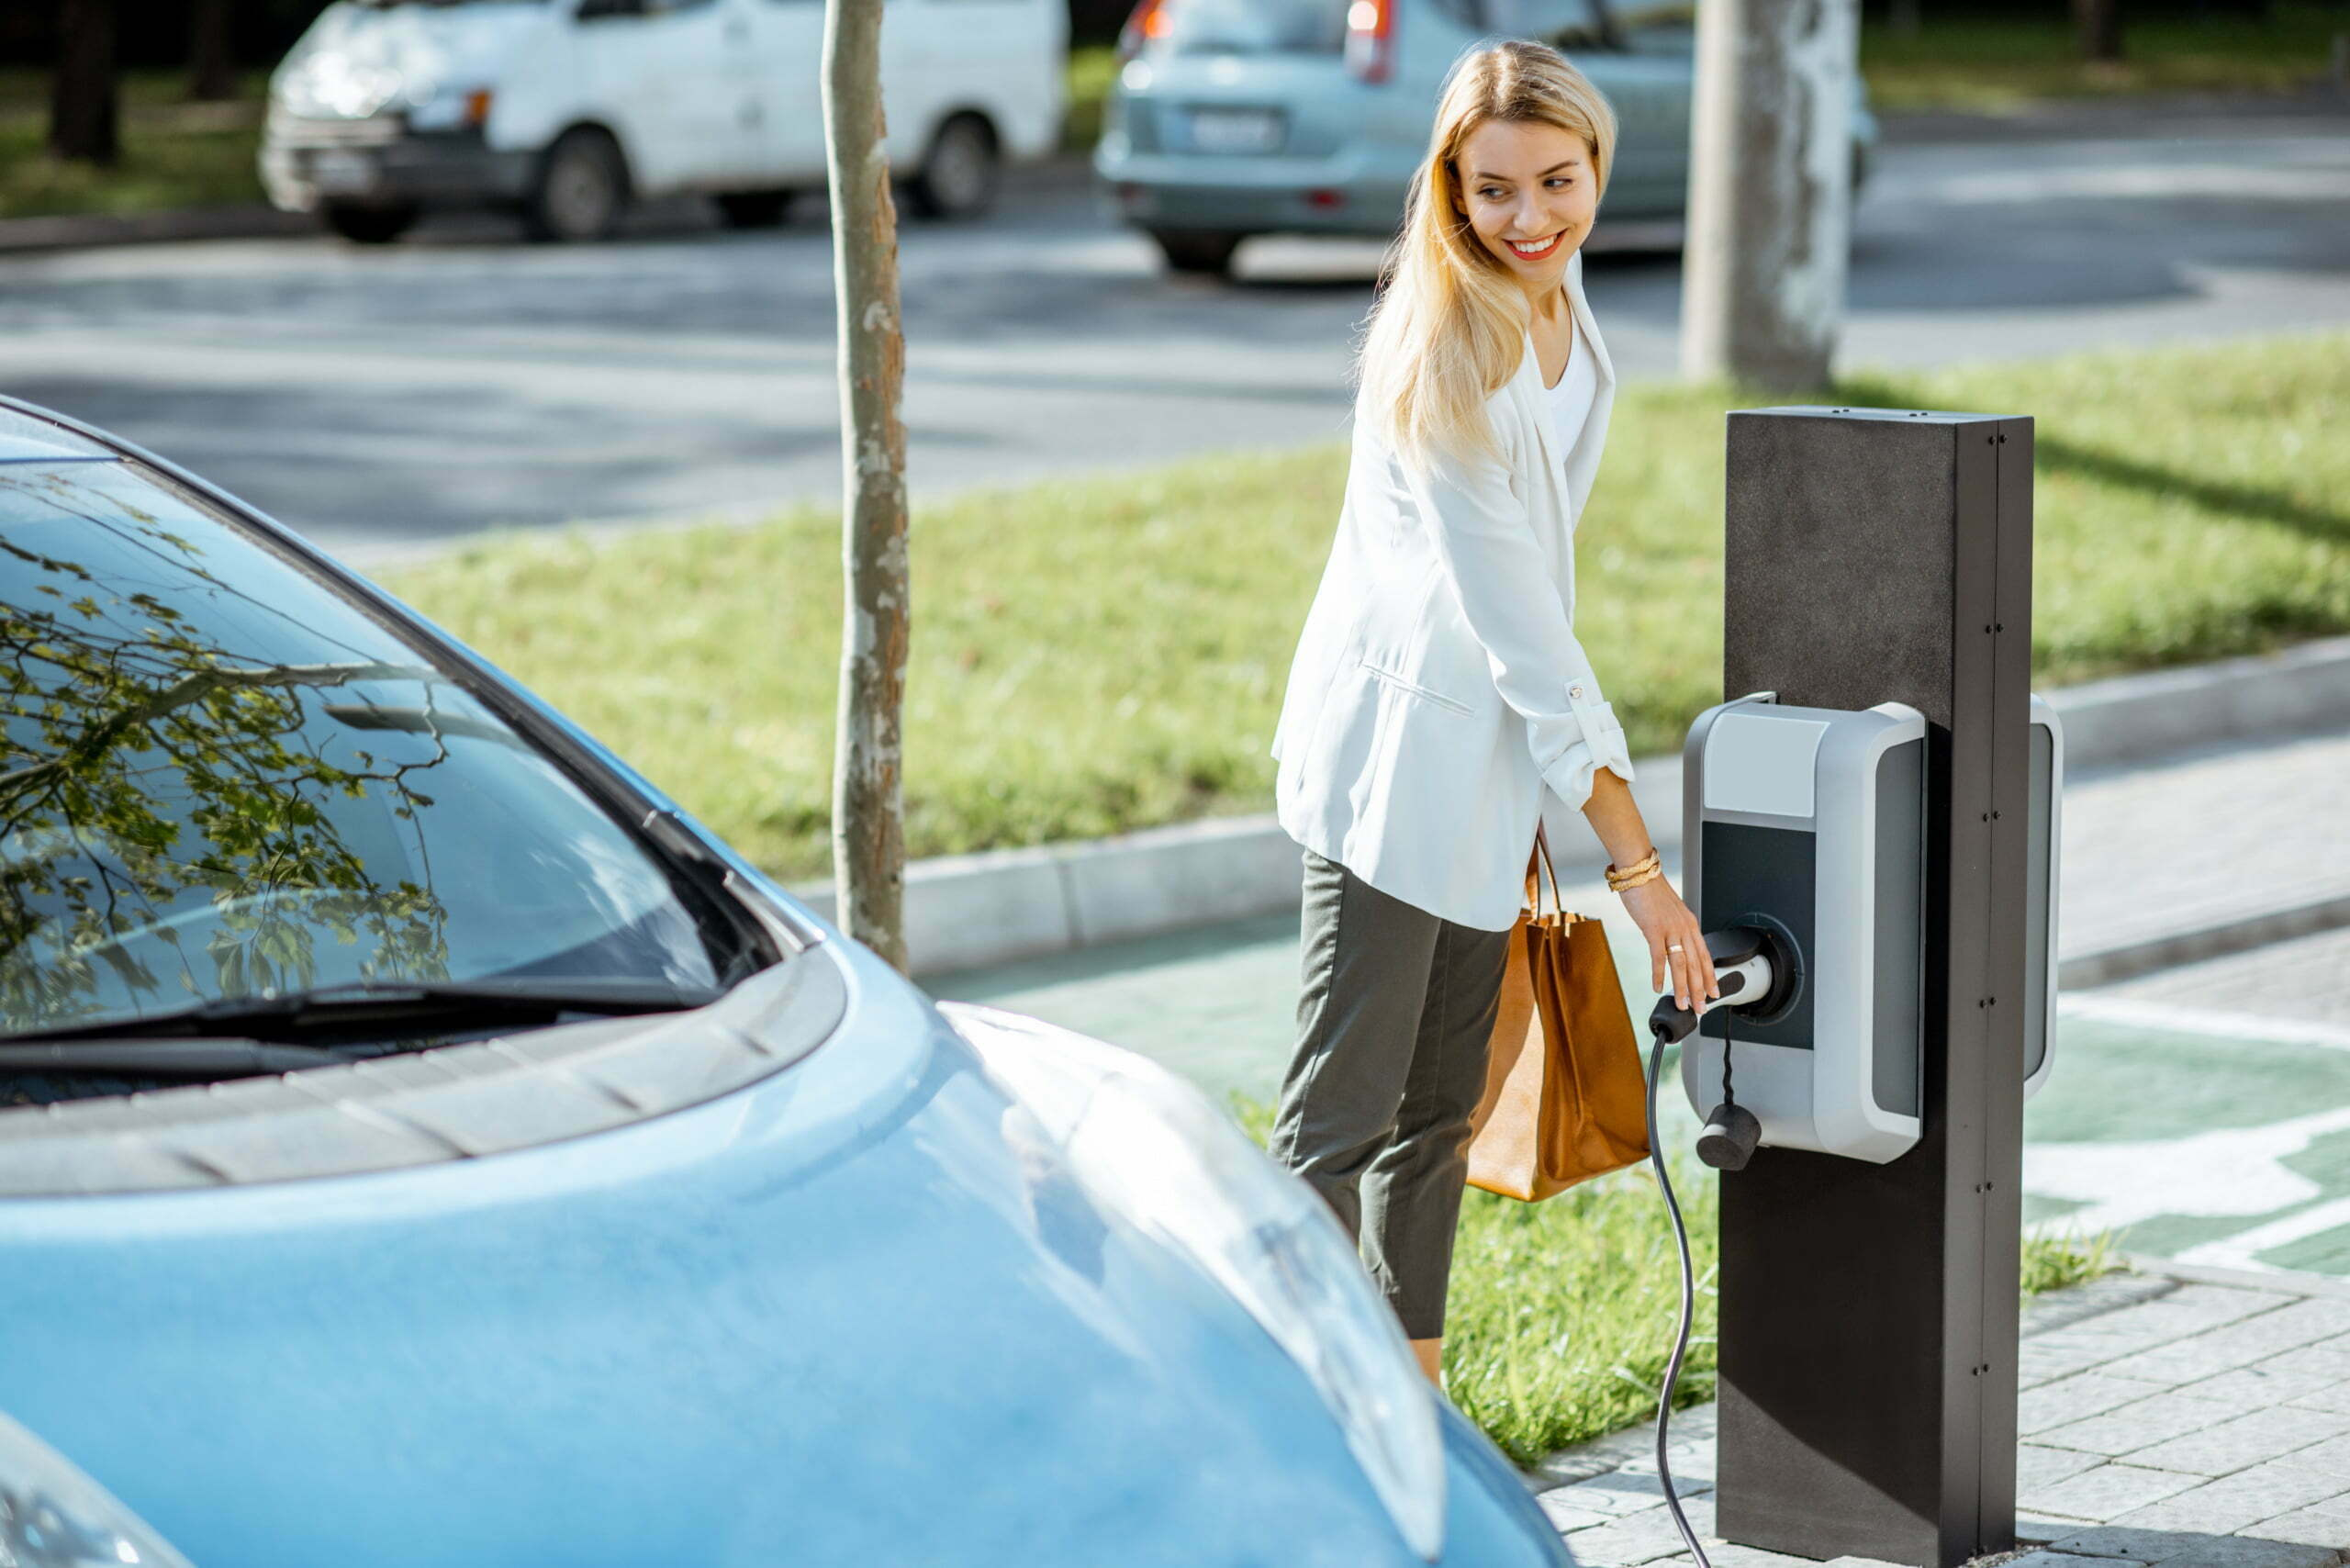 Businesswoman plugging charging gun into the electric station.